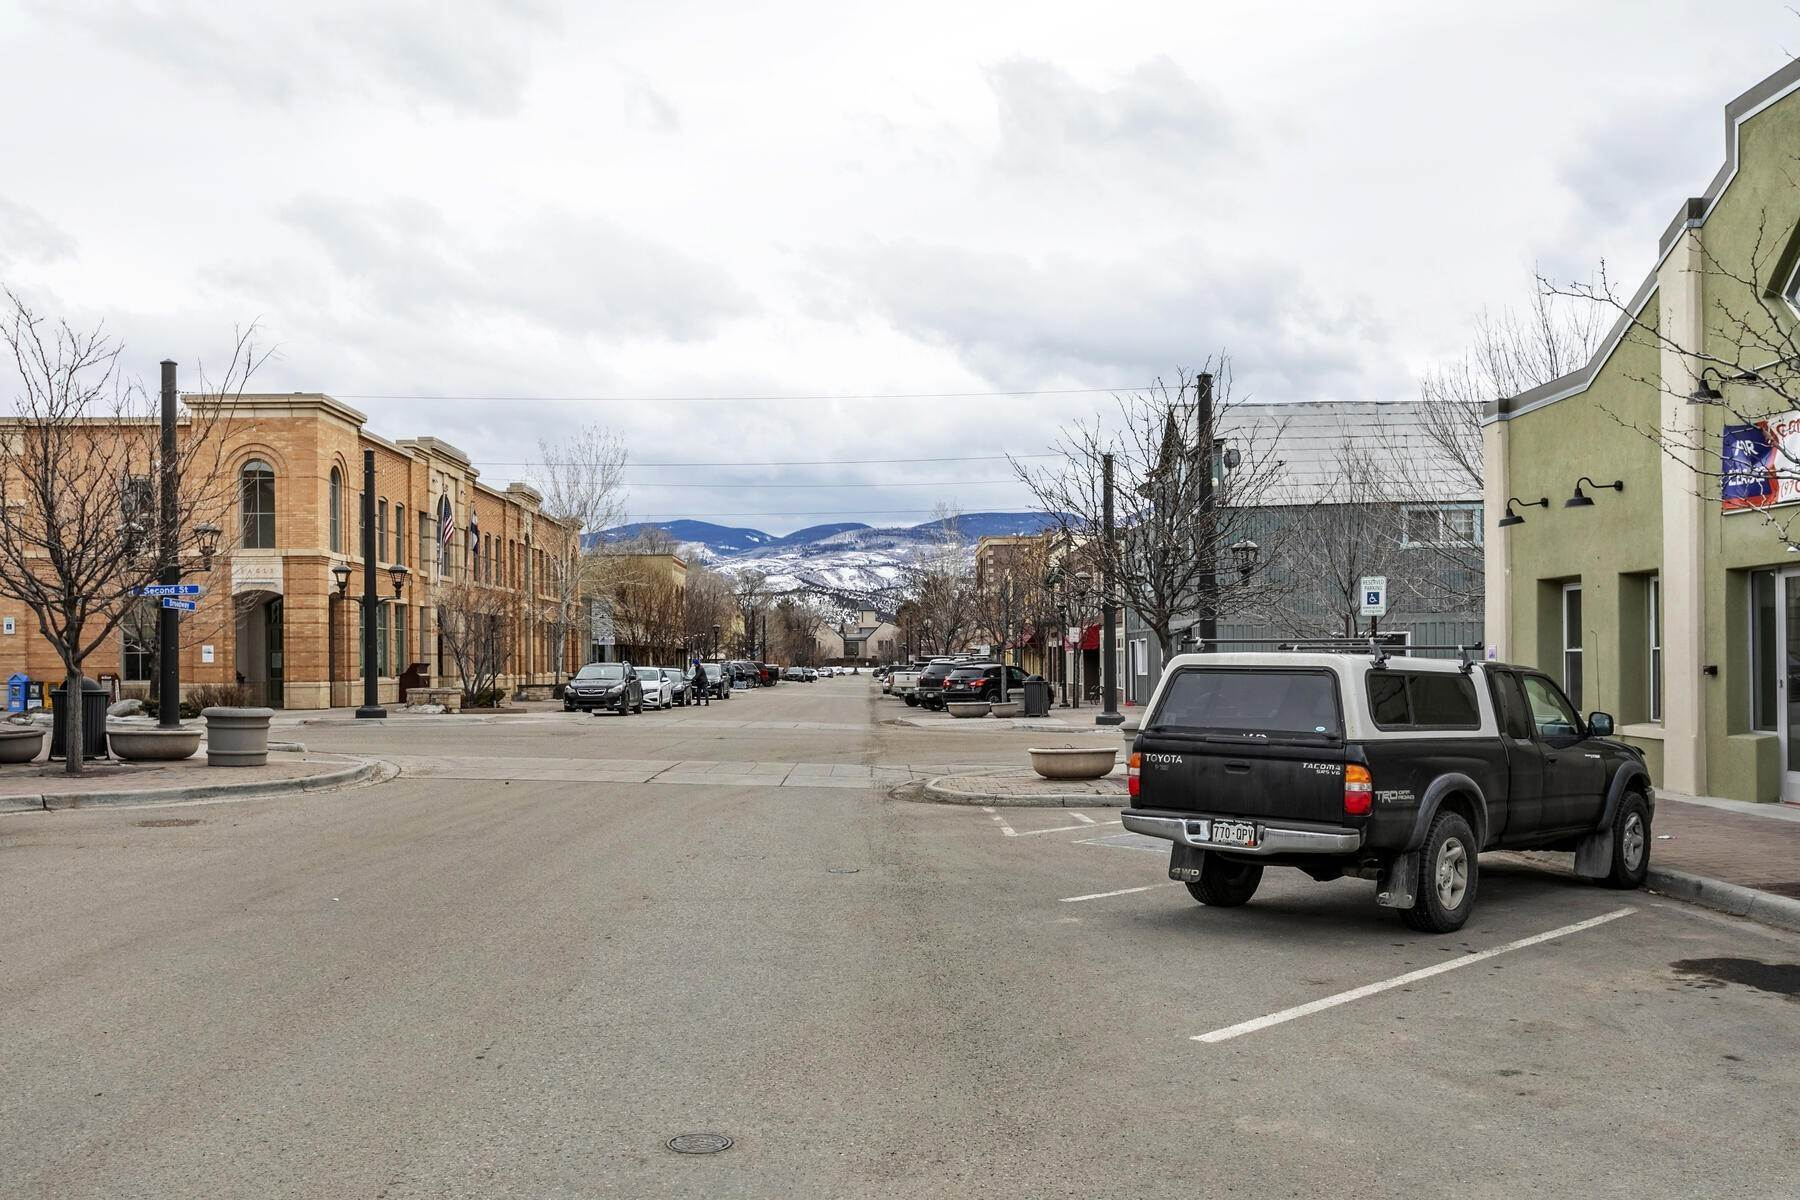 Single Family Homes for Sale at Redevelopment opportunity on Grand Avenue in downtown Eagle 646 Grand Avenue Eagle, Colorado 81631 United States